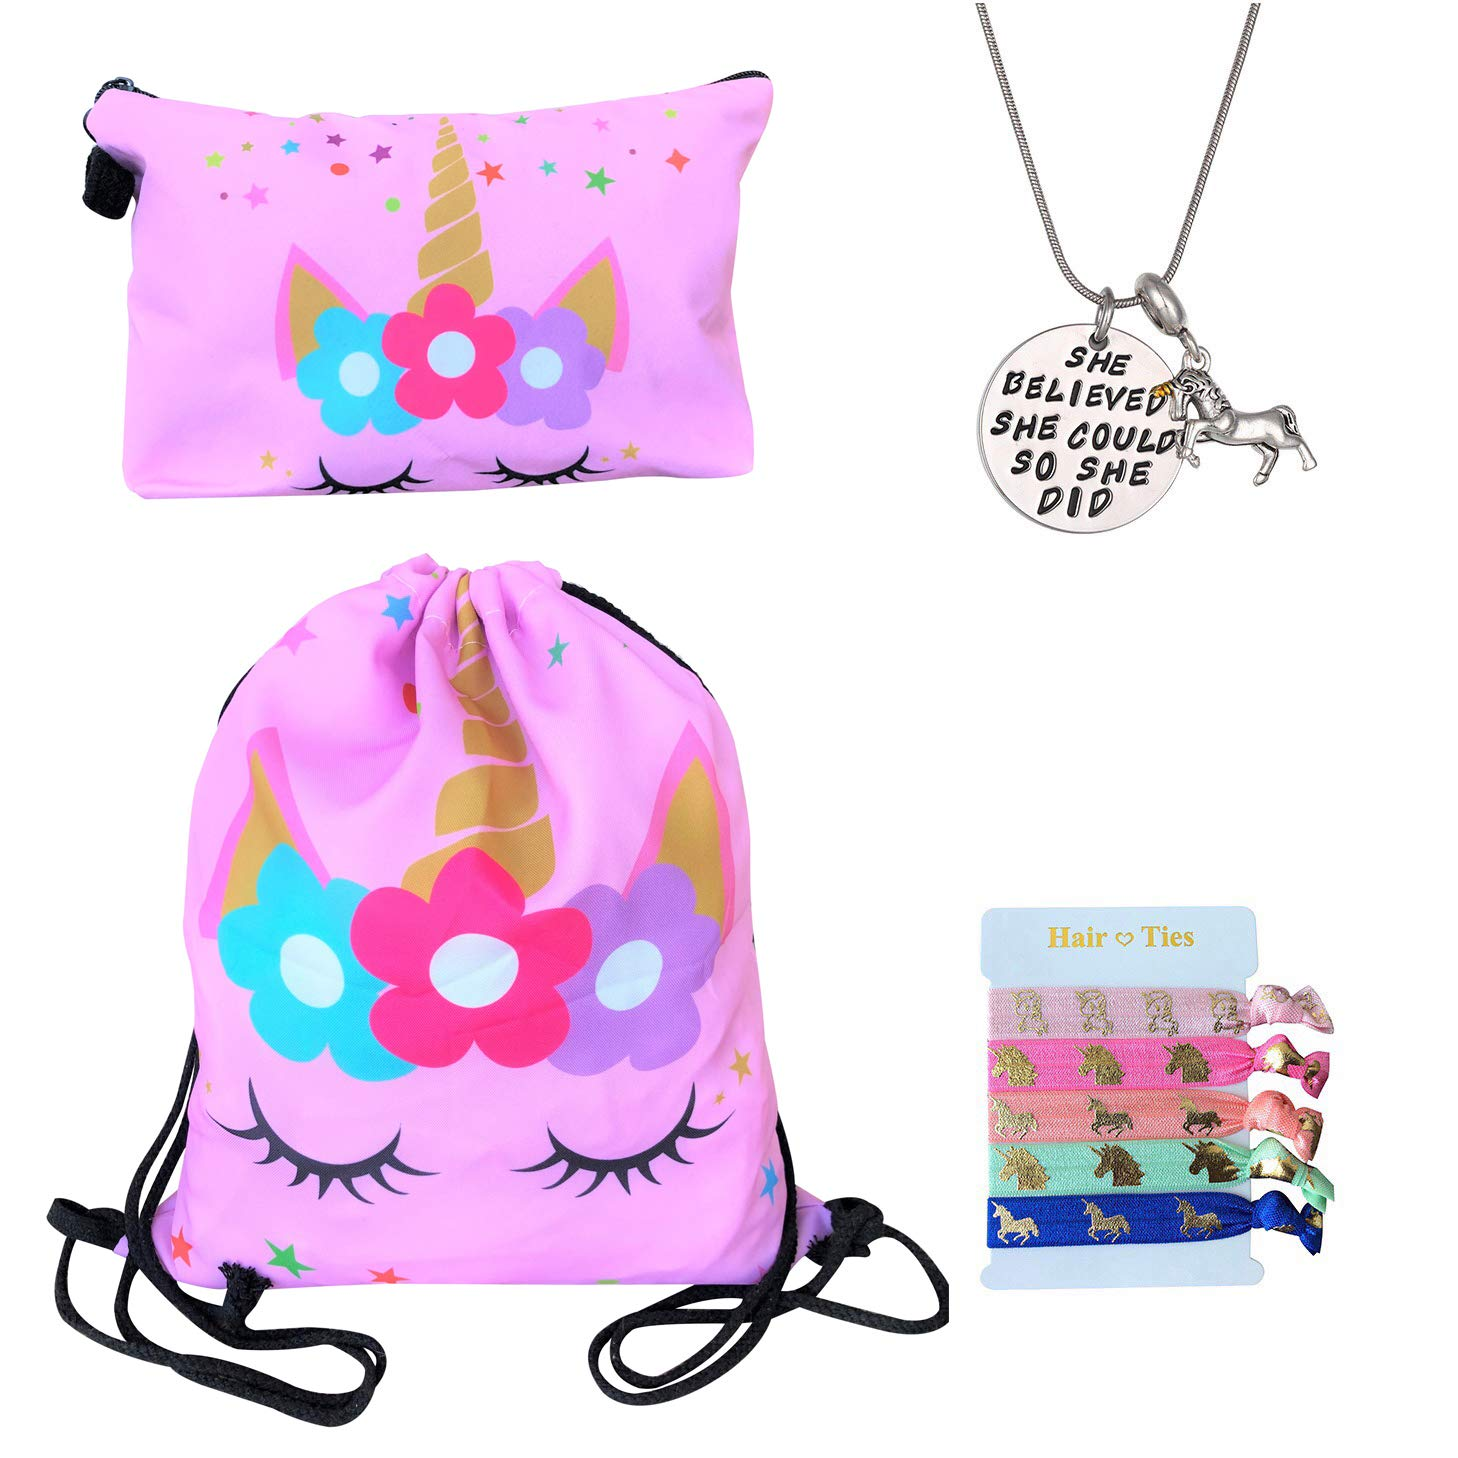 Unicorn Gifts for Girls - Unicorn Drawstring Backpack/Makeup Bag/Inspirational Necklace/Hair Ties (Pink Star Unicorn)